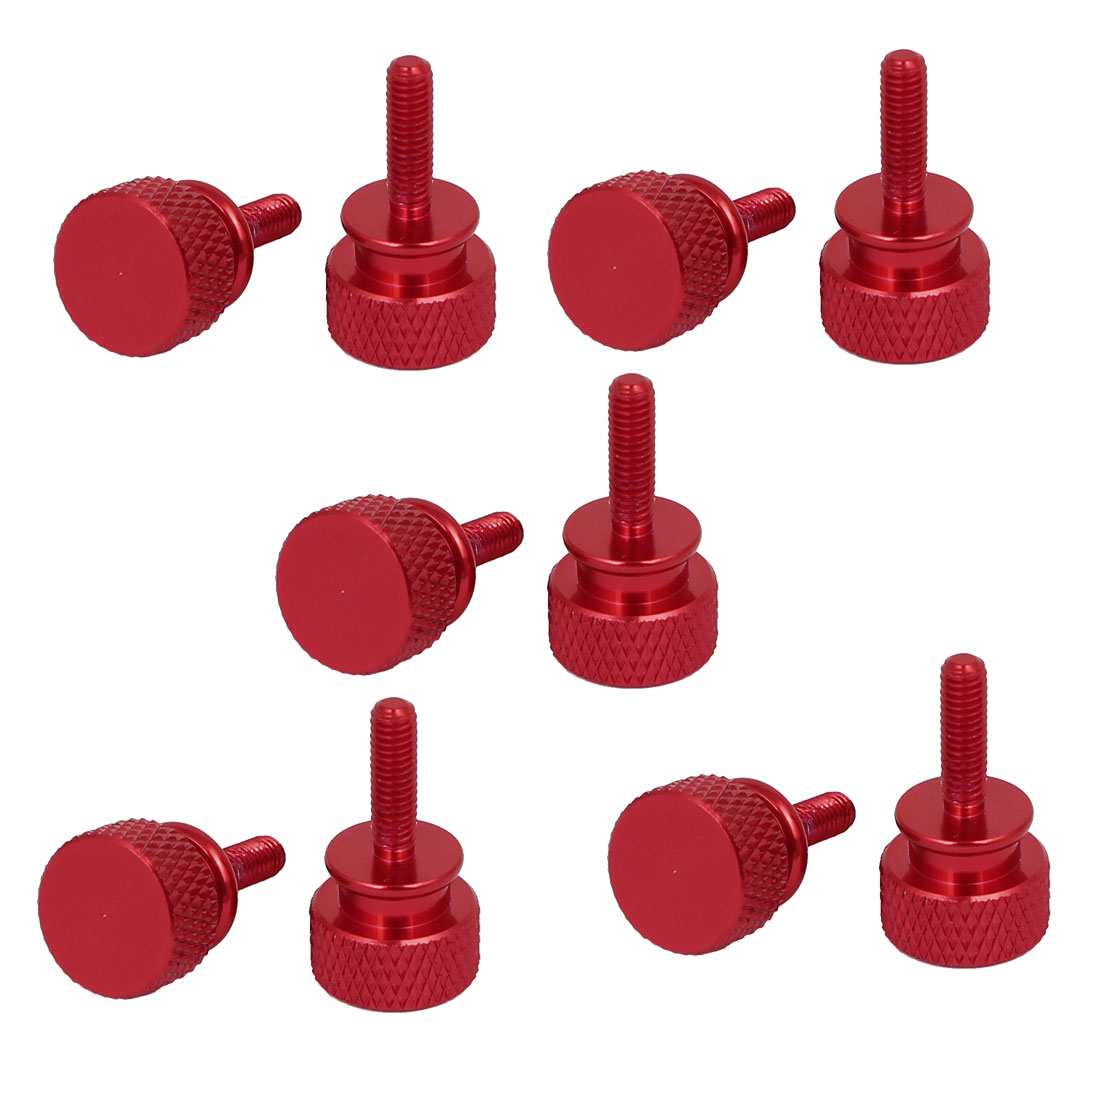 Computer PC Case Fully Threaded Knurled Thumb Screws Wine Red M3.5x12mm 10pcs